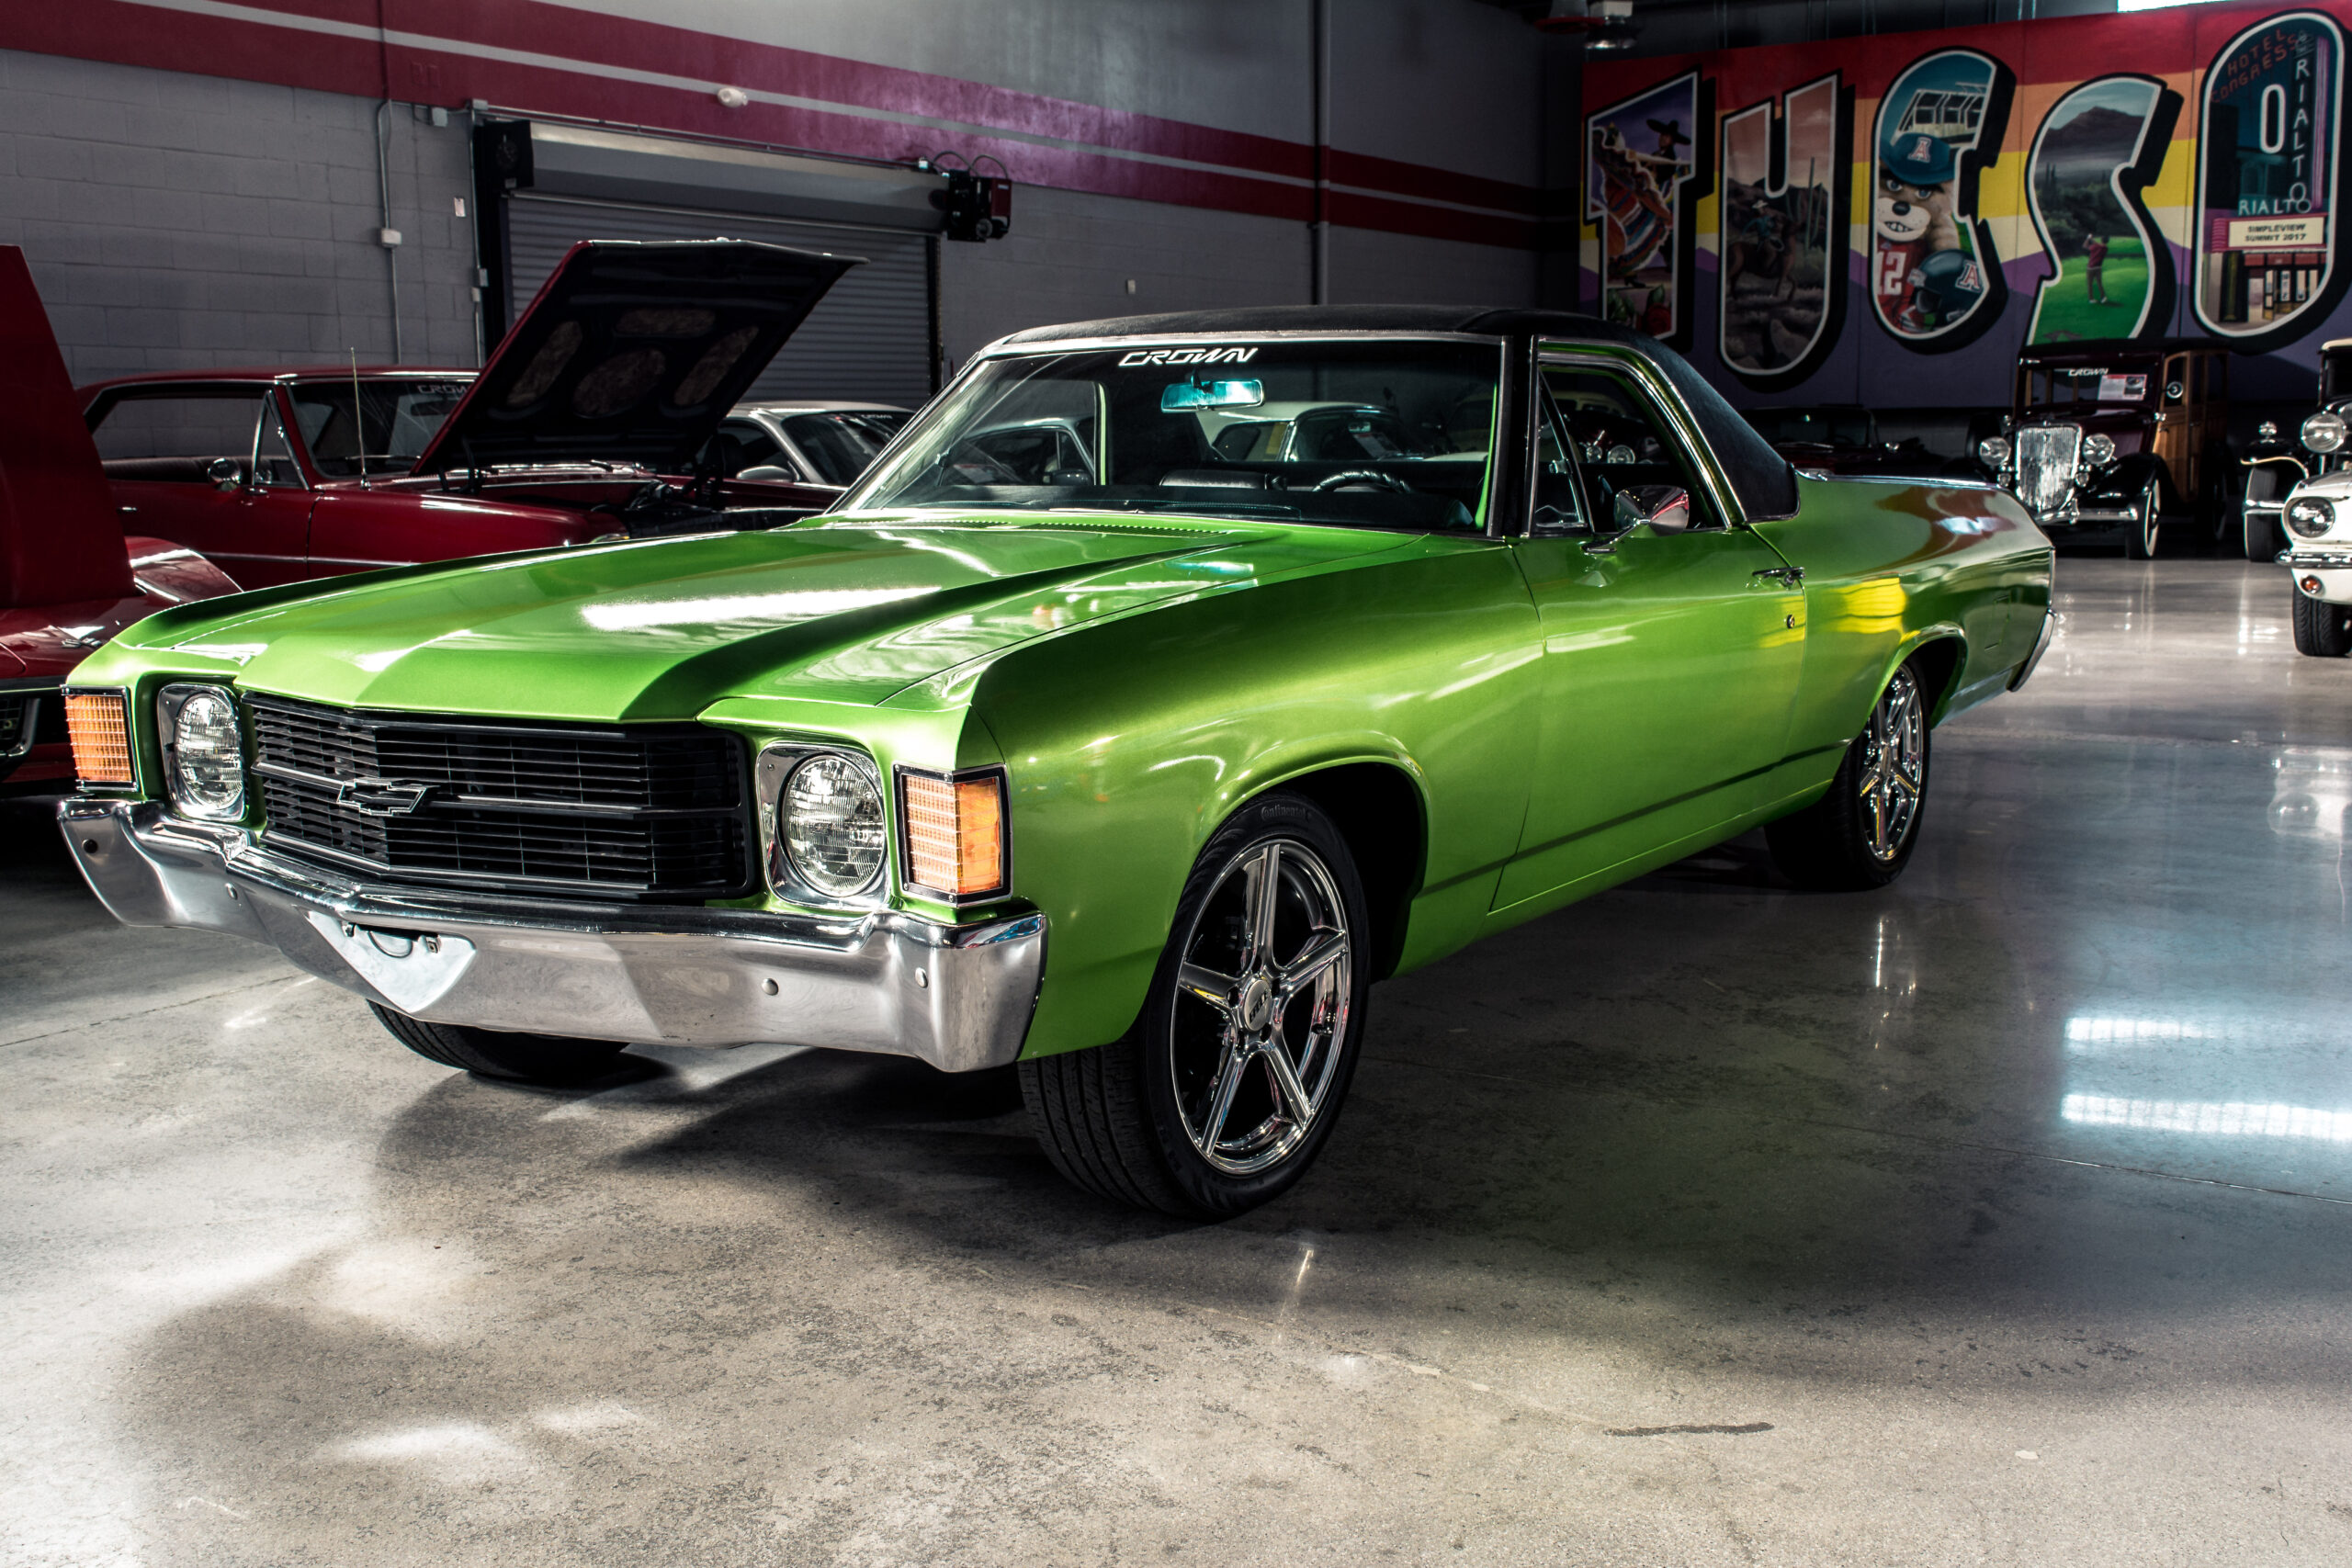 1971 Chevy El Camino Green